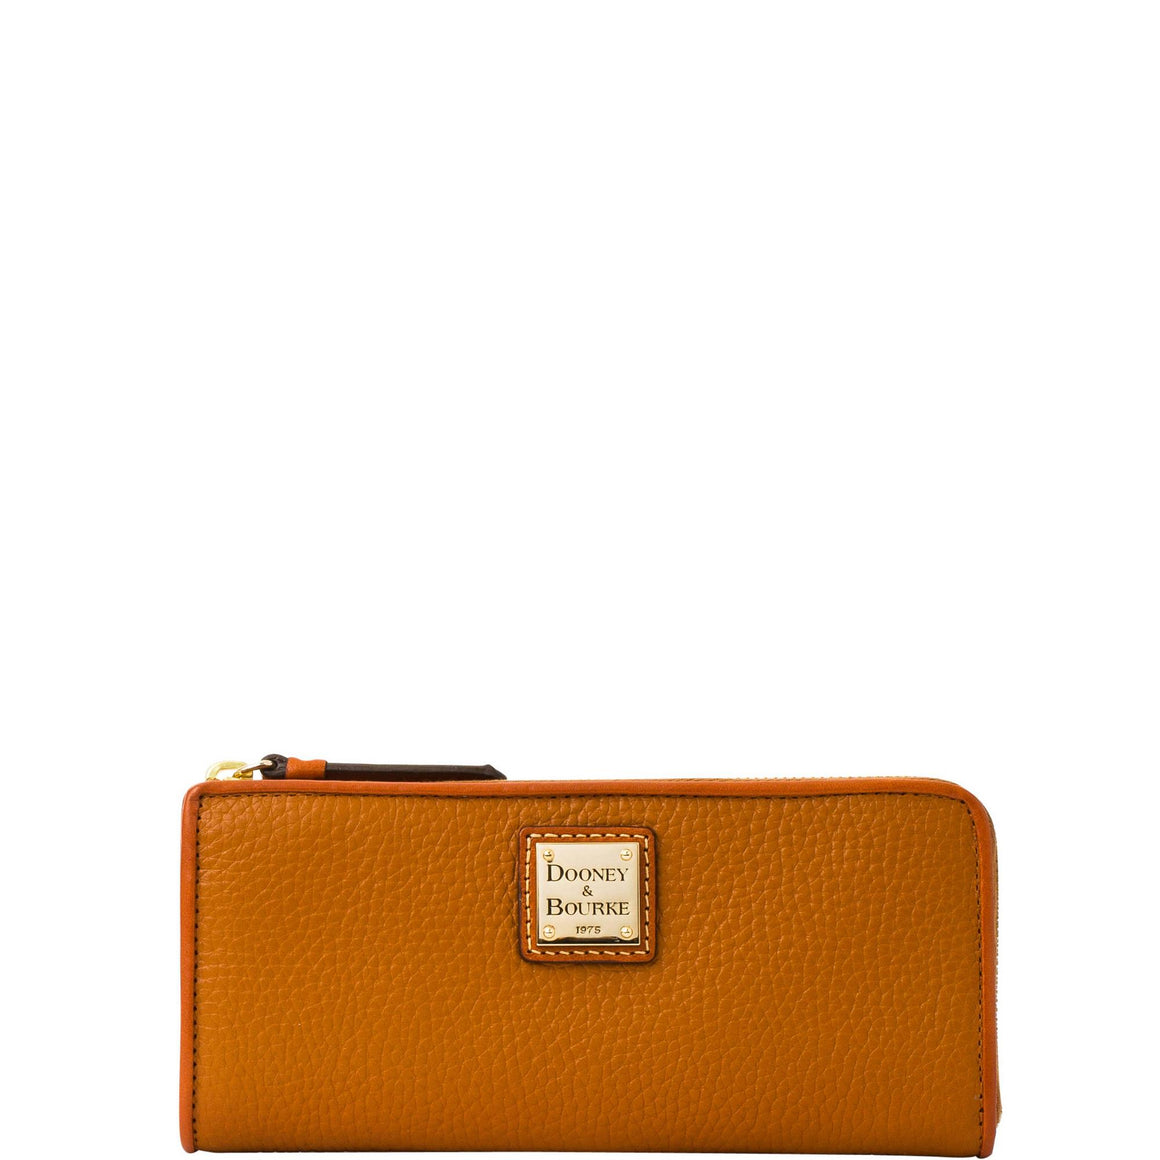 Dooney & Bourke Pebble Grain L Zip Wallet Caramel